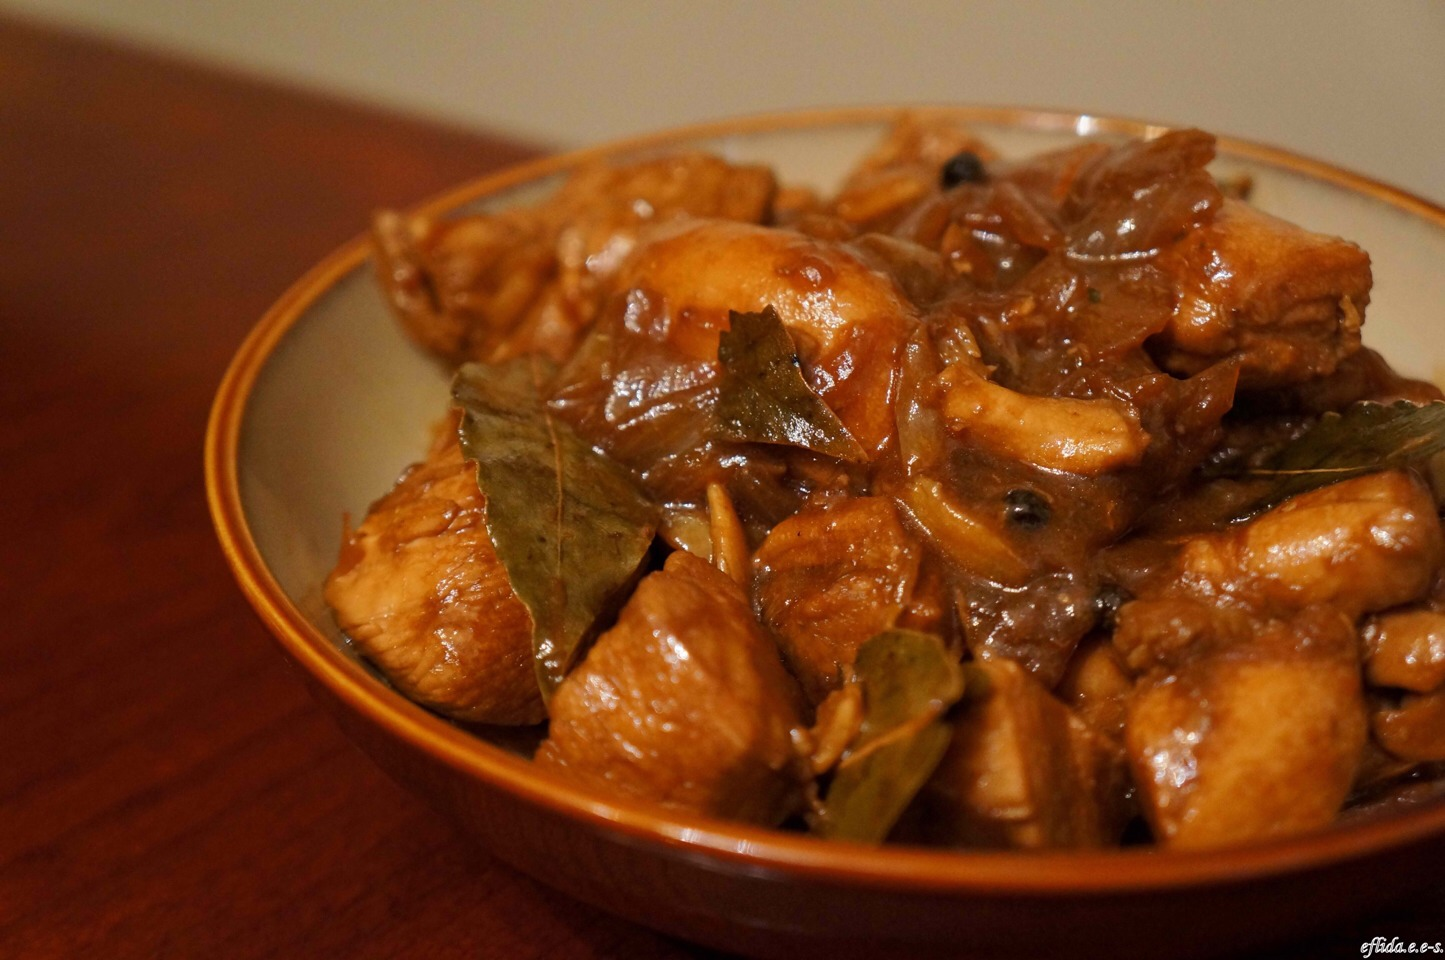 ADOBO is the all-Filipino dish that foreigners fall in love with. Simple and easy to cook, ADOBO is always a star in every dinner table. Even Chef Gordon made excellent comments when he tried Adobo in the Philippines! Swipe for the ingredients and steps!